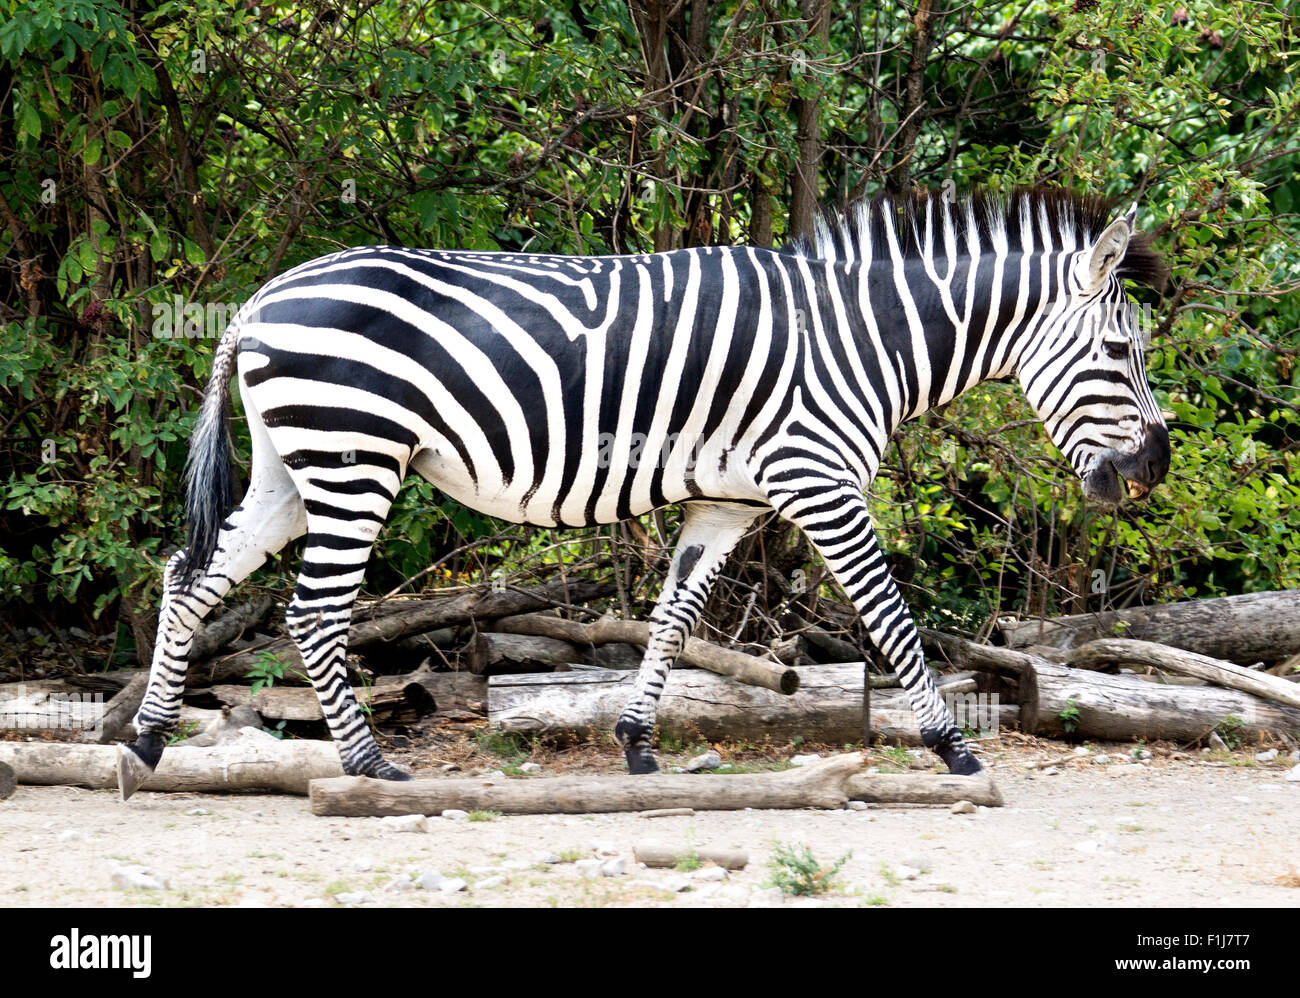 A zebra walking in the zoo - Stock Image